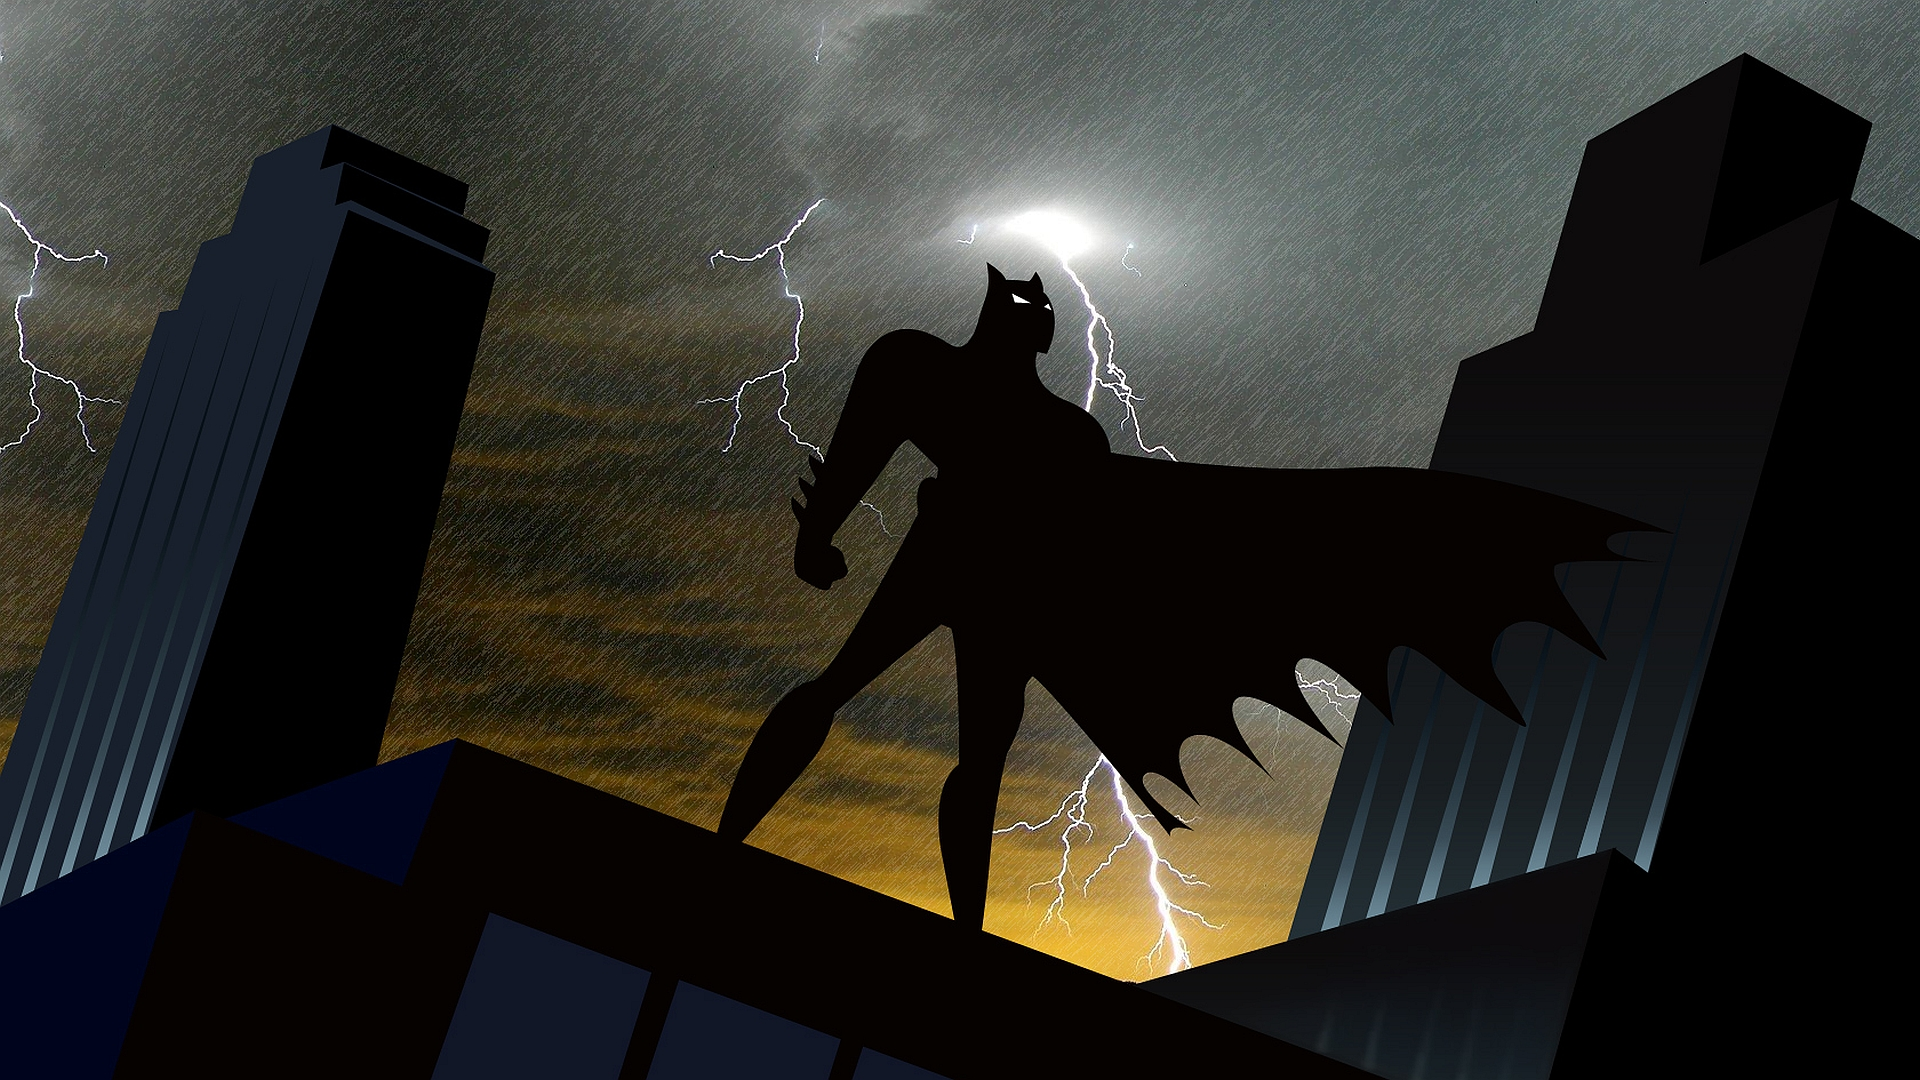 batman animated series wallpaper - wallpapersafari